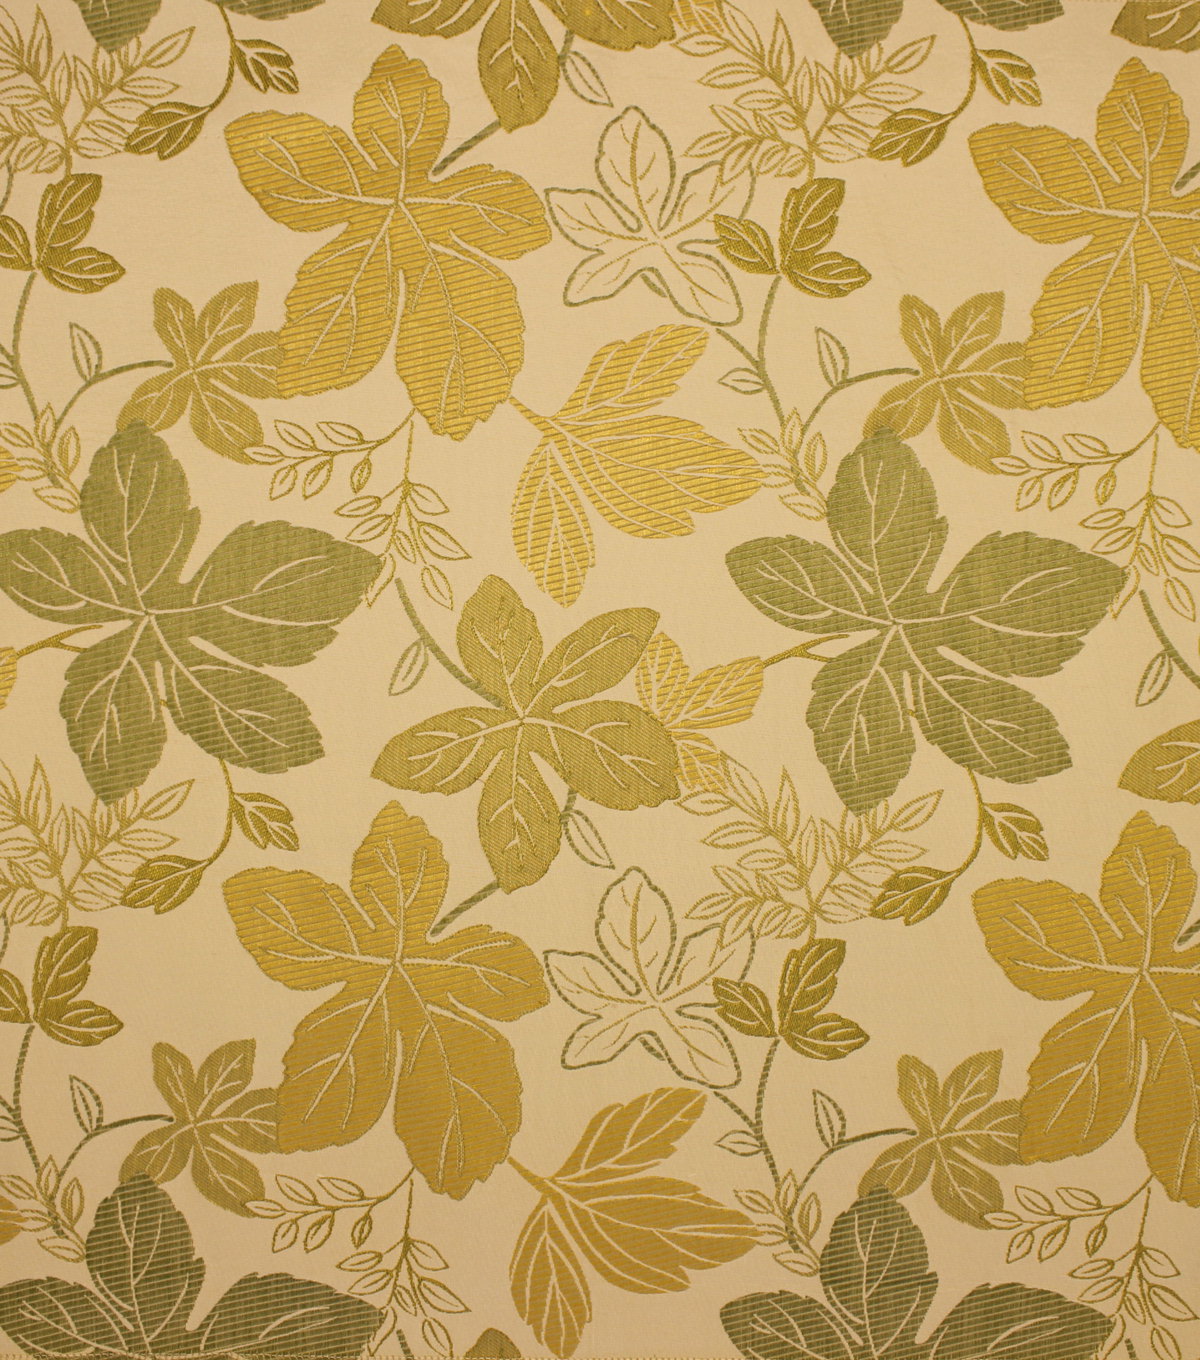 Home Decor 8\u0022x8\u0022 Fabric Swatch-Upholstery Fabric Barrow M8809-5883 Birch